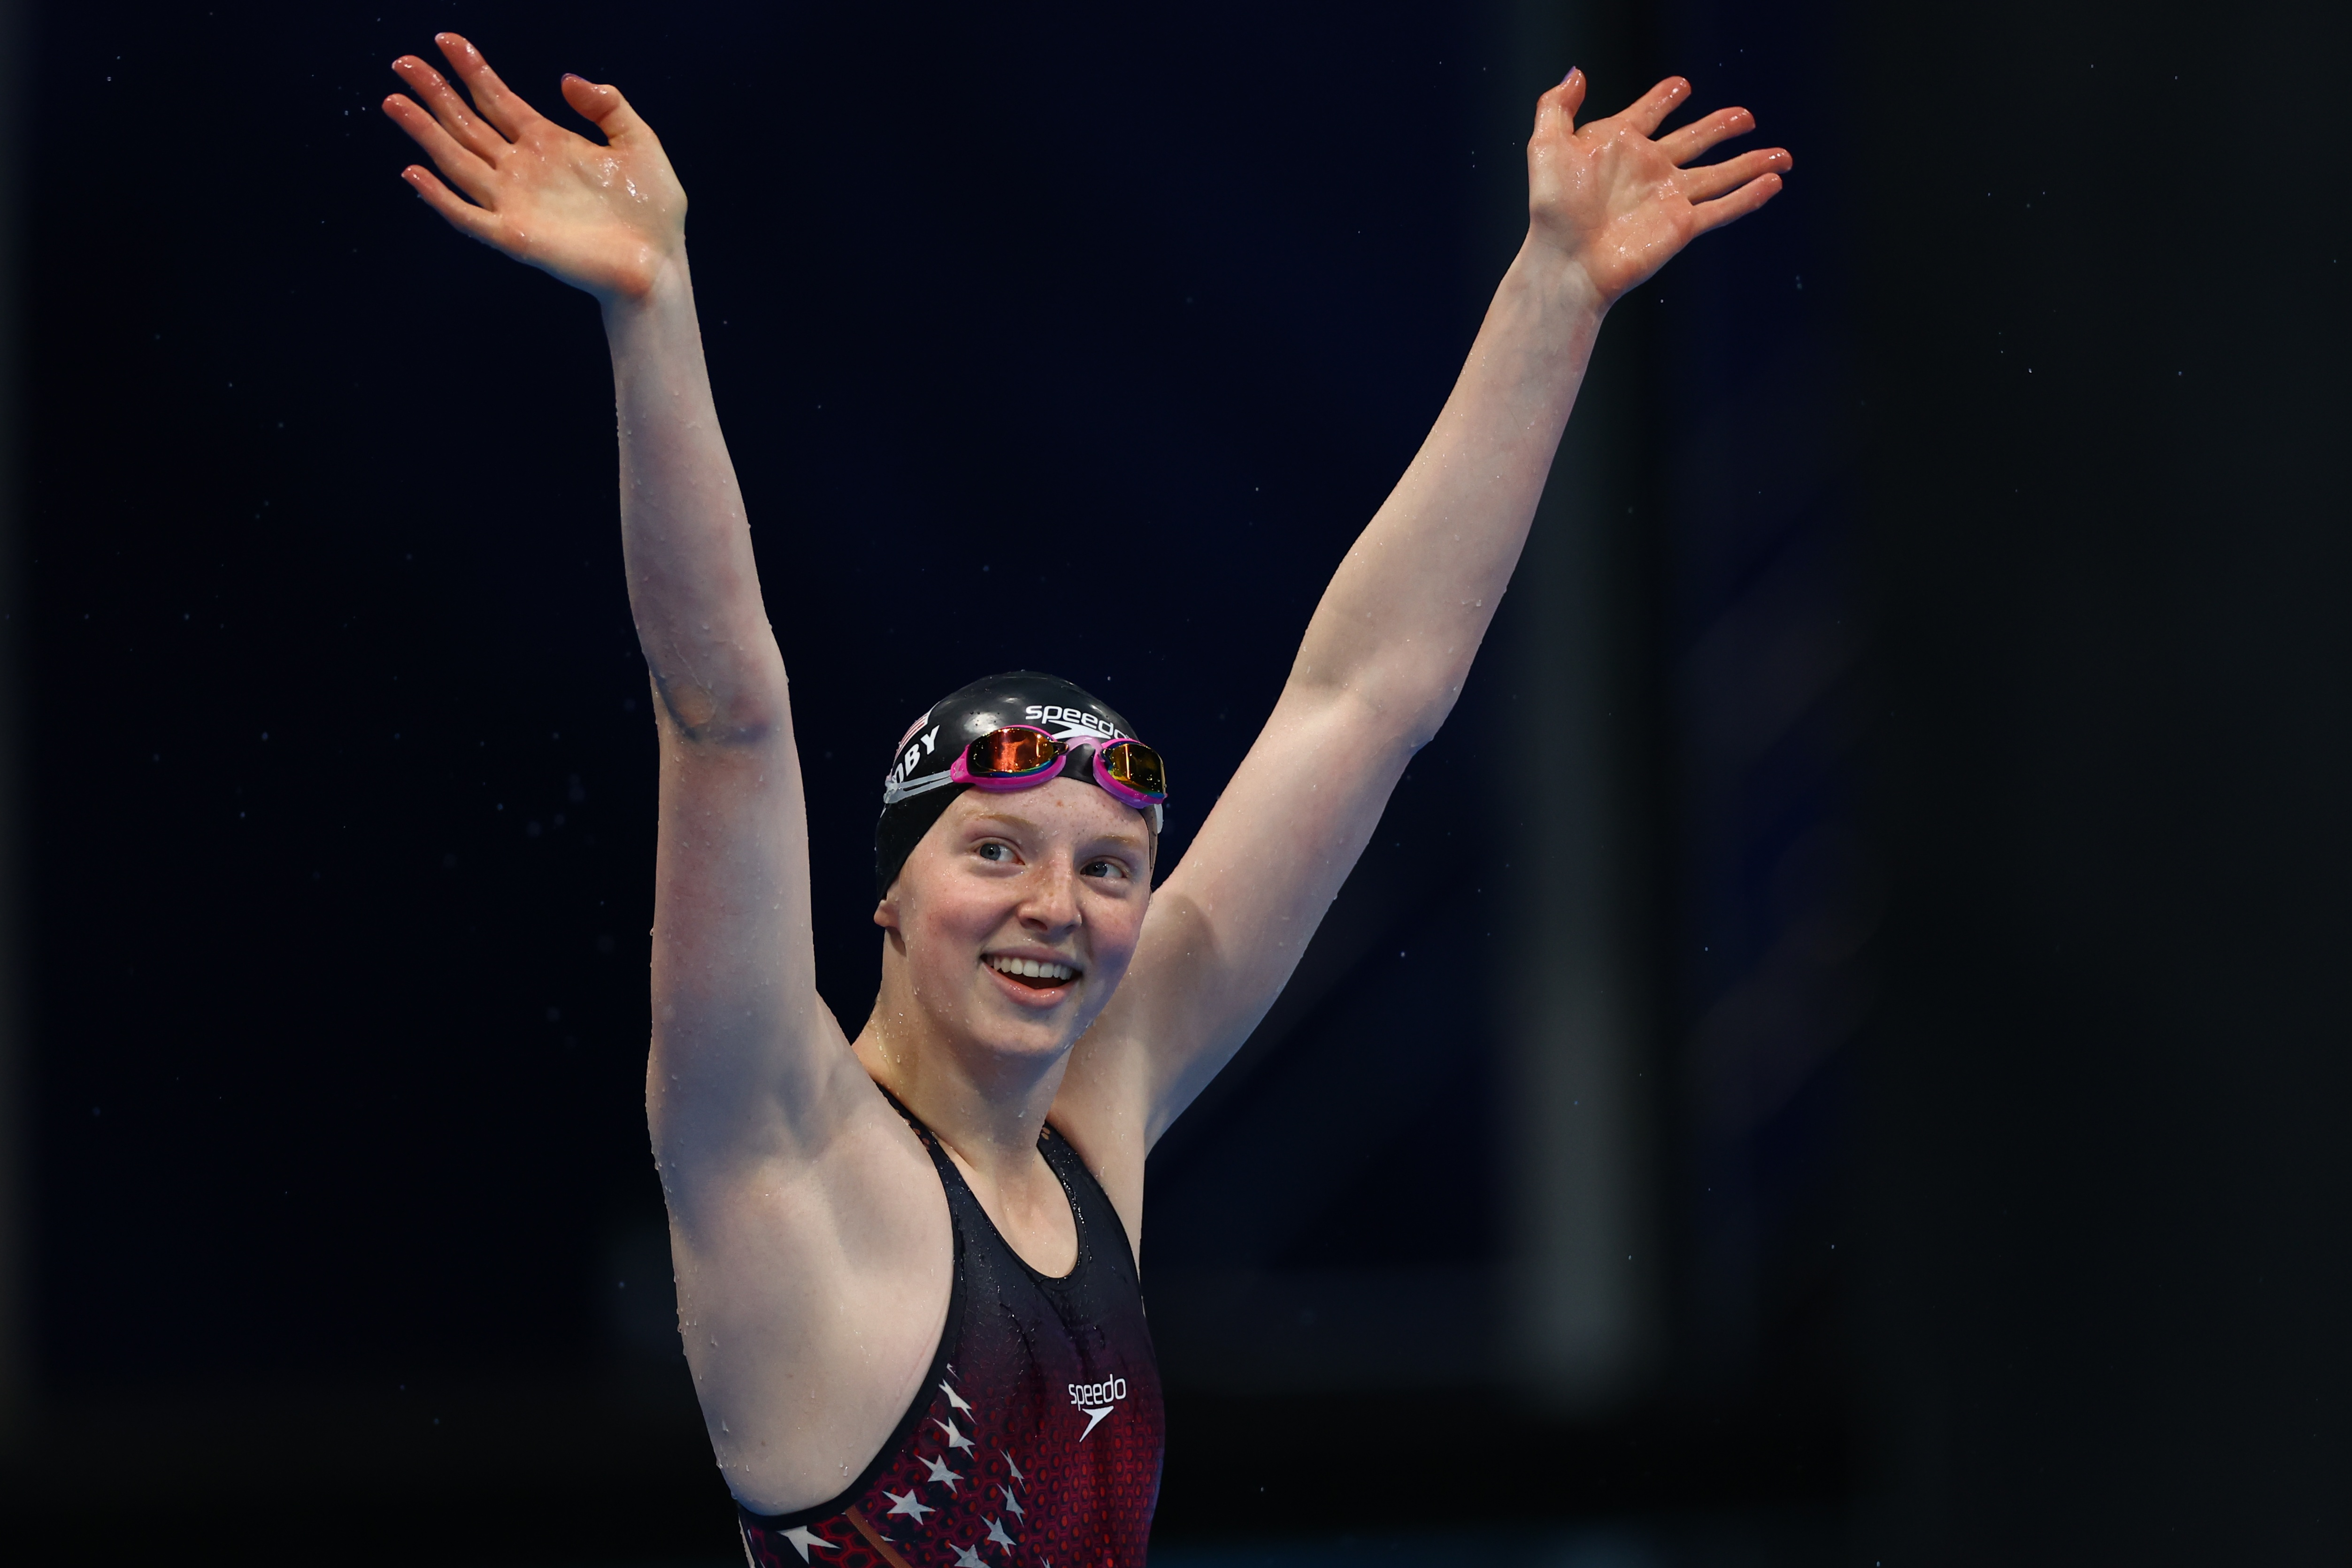 Tokyo 2020 Olympics - Swimming - Women's 100m Breaststroke - Final - Tokyo Aquatics Centre - Tokyo, Japan - July 27, 2021.  Lydia Jacoby of the United States celebrates after winning the gold medal REUTERS/Kai Pfaffenbach